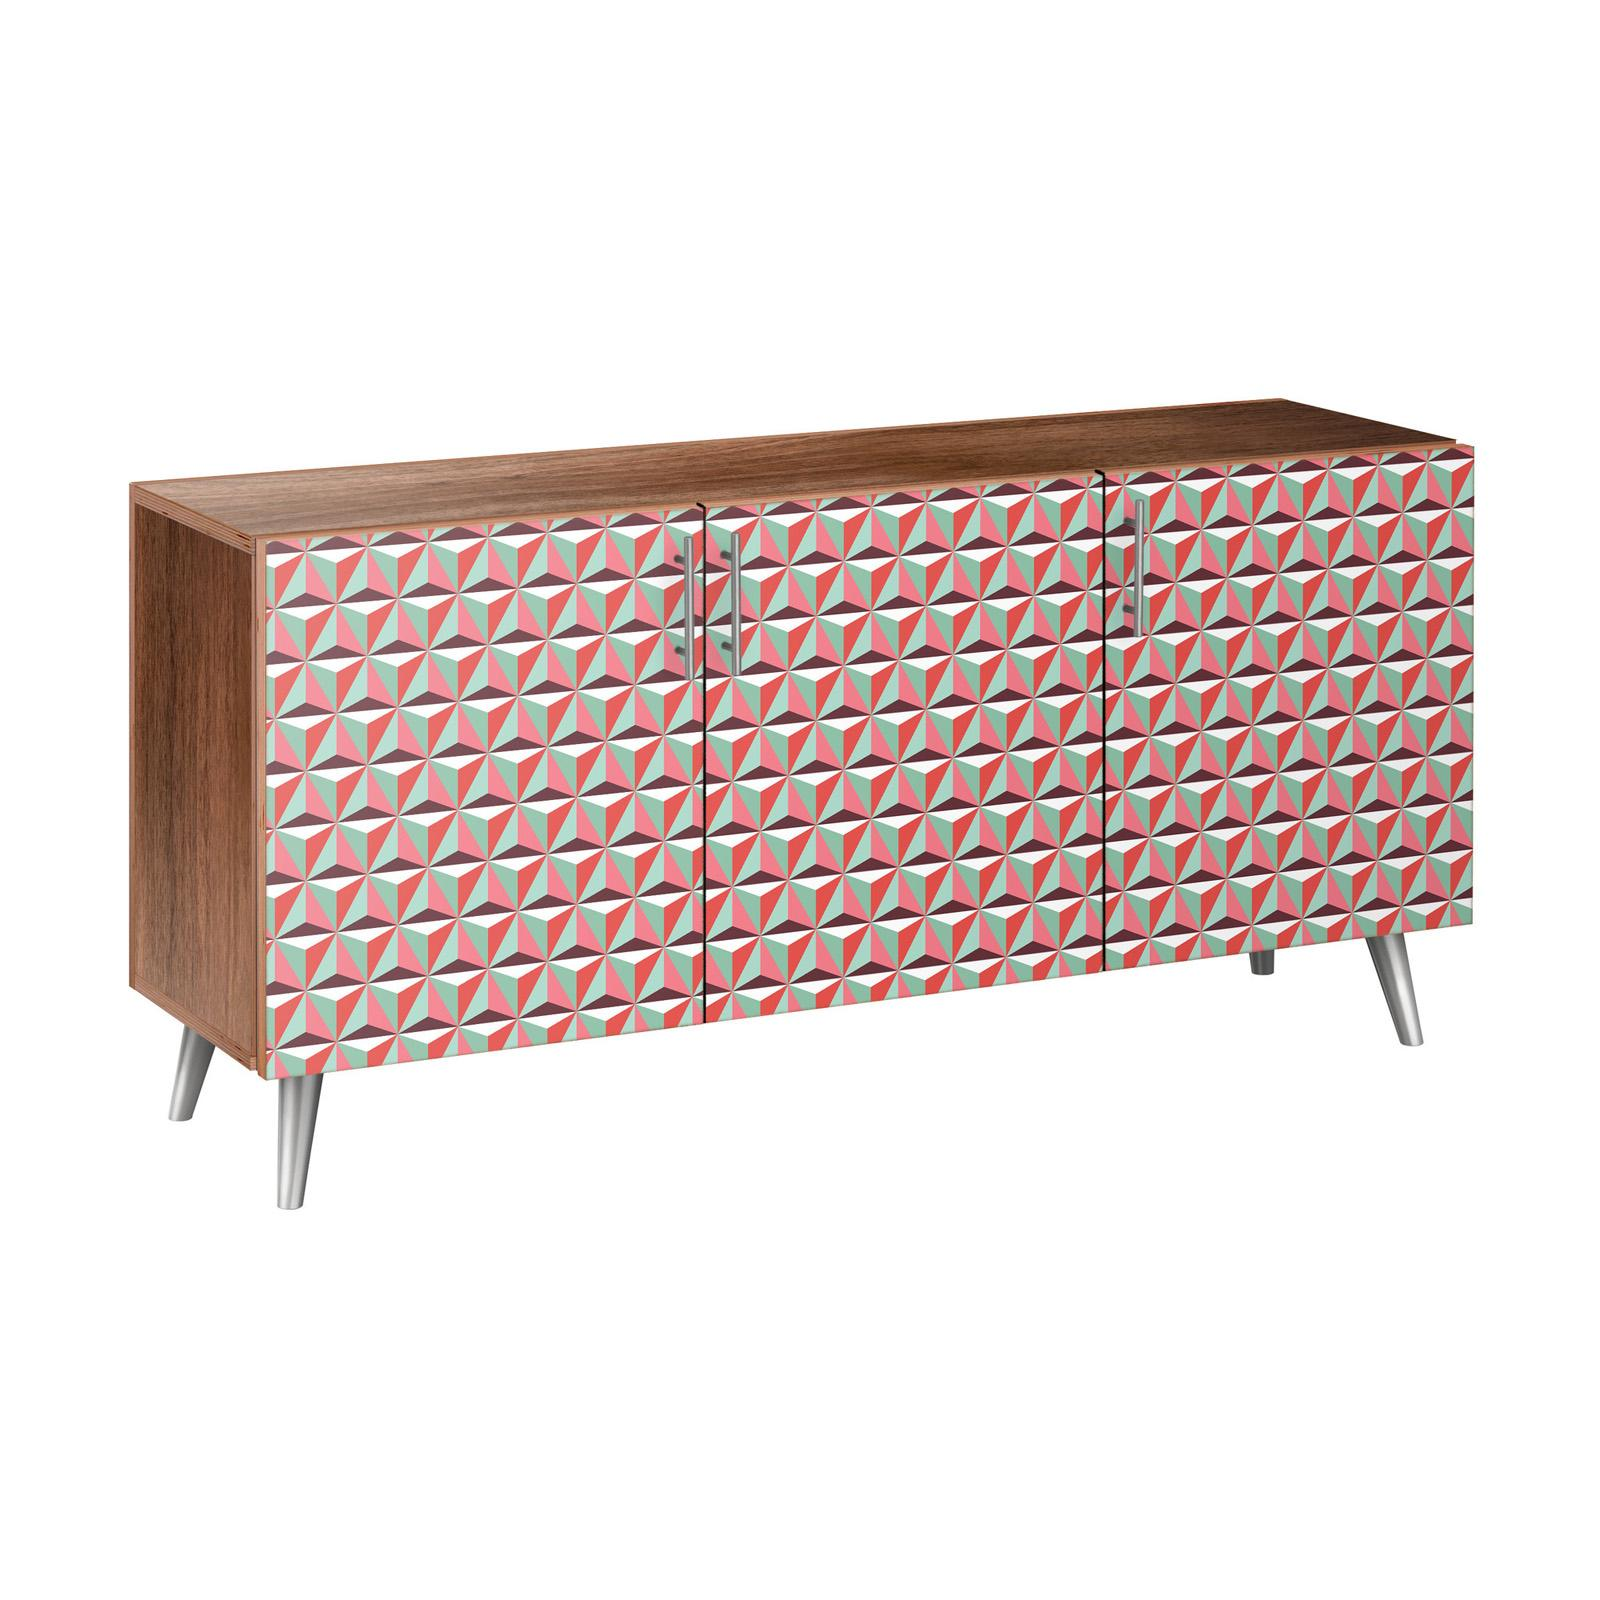 Nyekoncept Vibrant Tessellation Flare Sideboard - 13005257